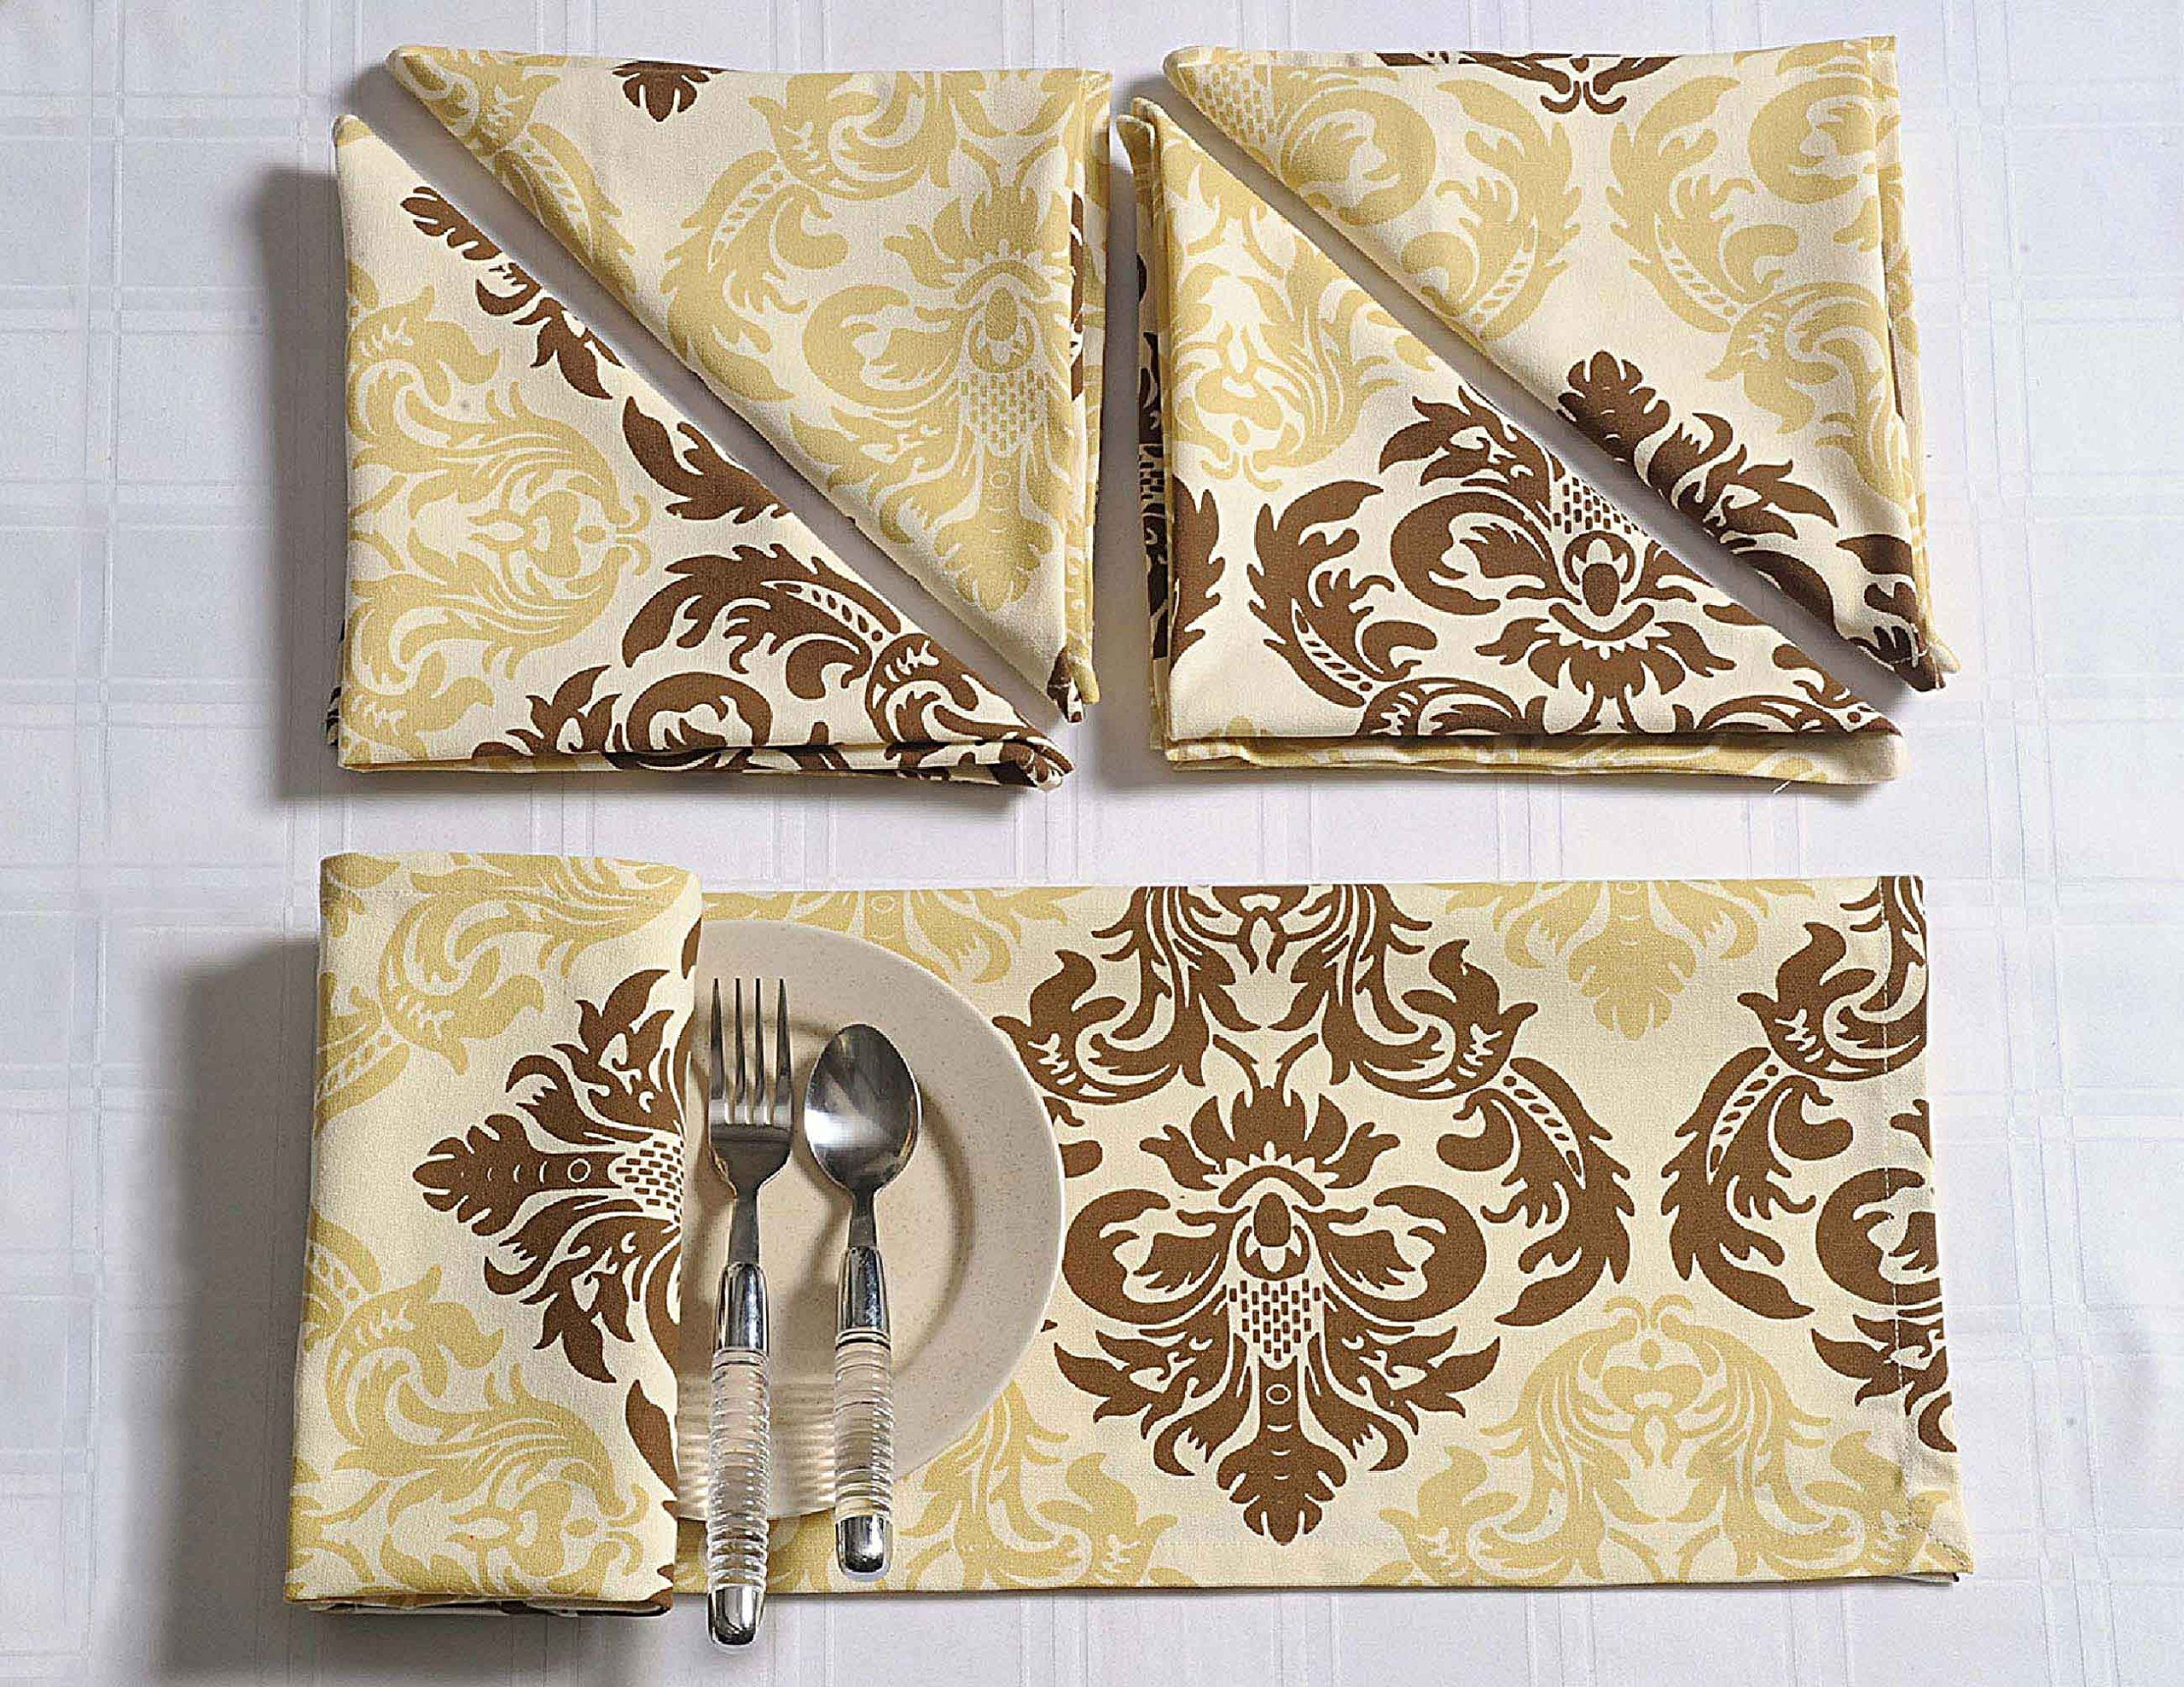 Shalinindia Patterned Cotton Party Table Decorations Dinner Napkins Set of 24 - 20'' x 20'' -Premium Table Linens for the Dining Room - Beige and Chocolate Brown Damask